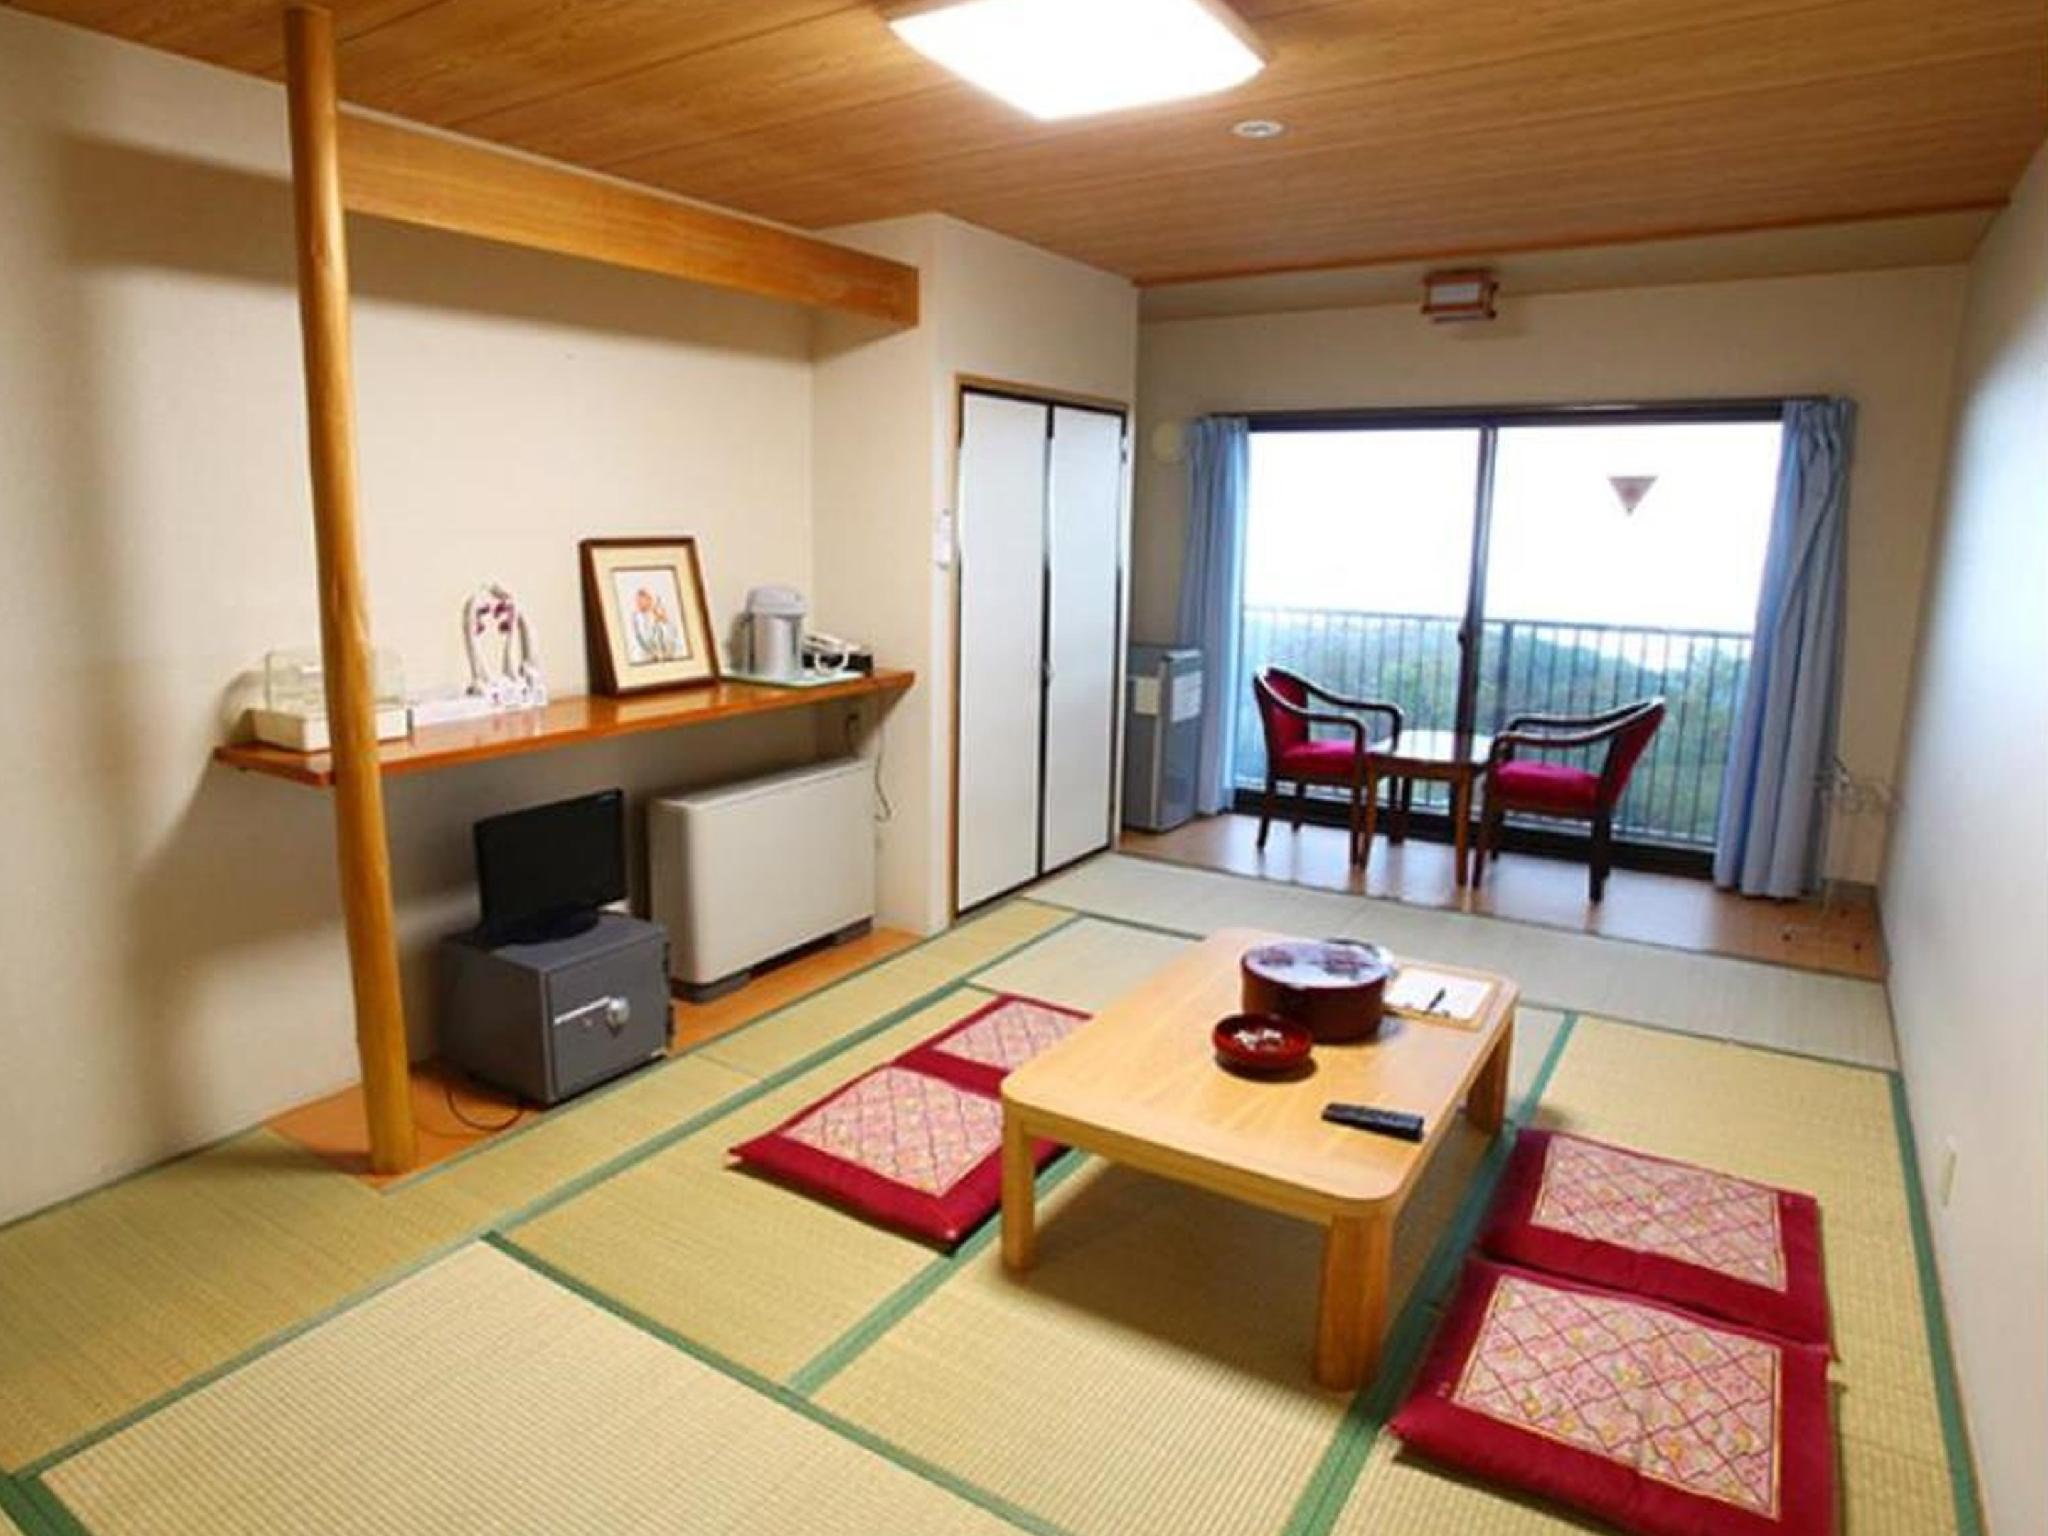 和式房或和式附床房(无法指定客房条件) (Japanese-style Room or Japanese-style Bedroom *Allocated on arrival)